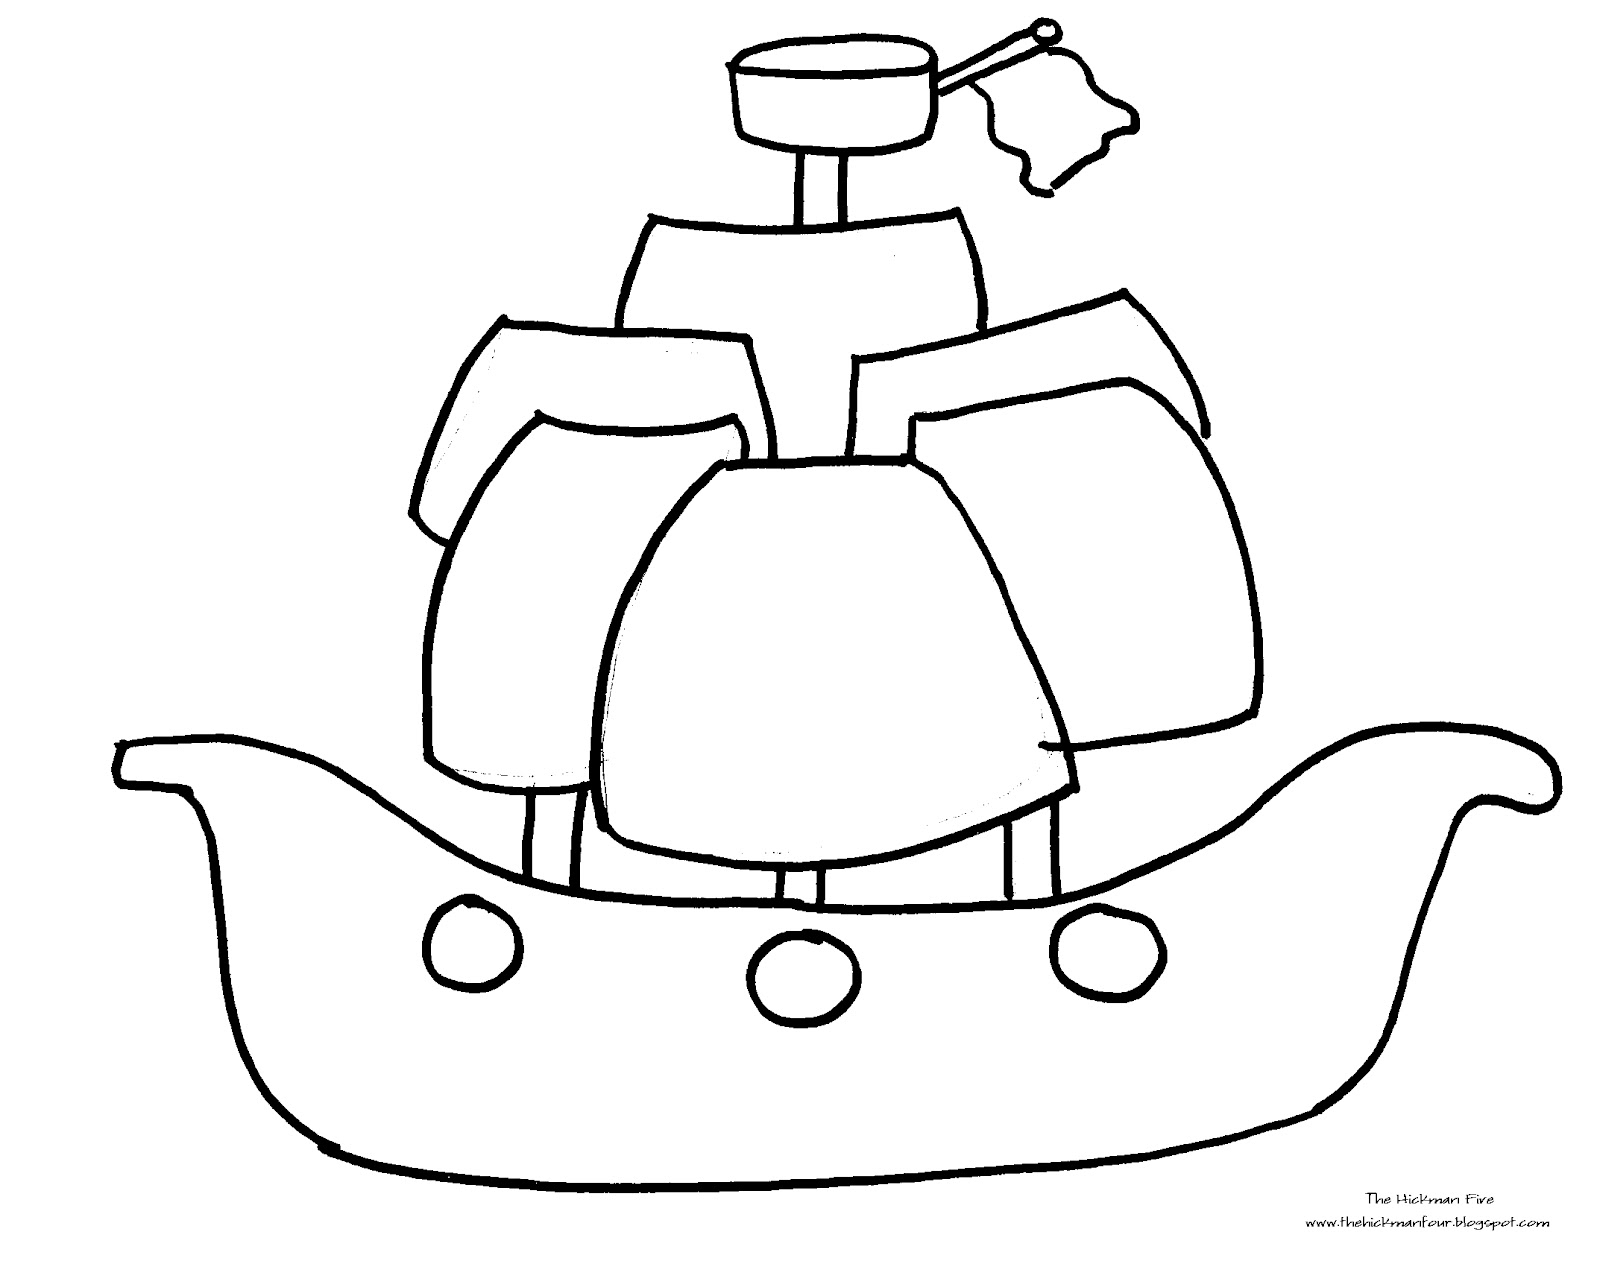 Pirate Ship Outline